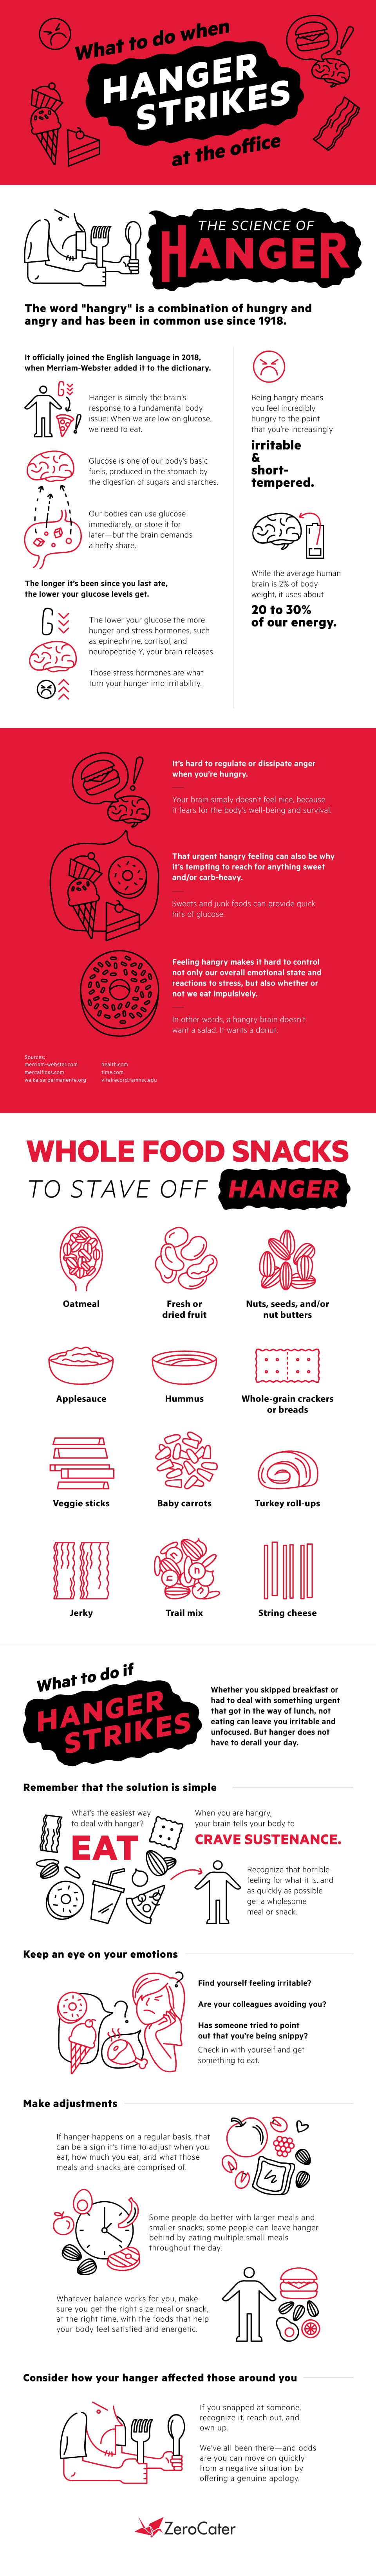 How to Fight an Attack of 'Hanger' and Win! - Infographic